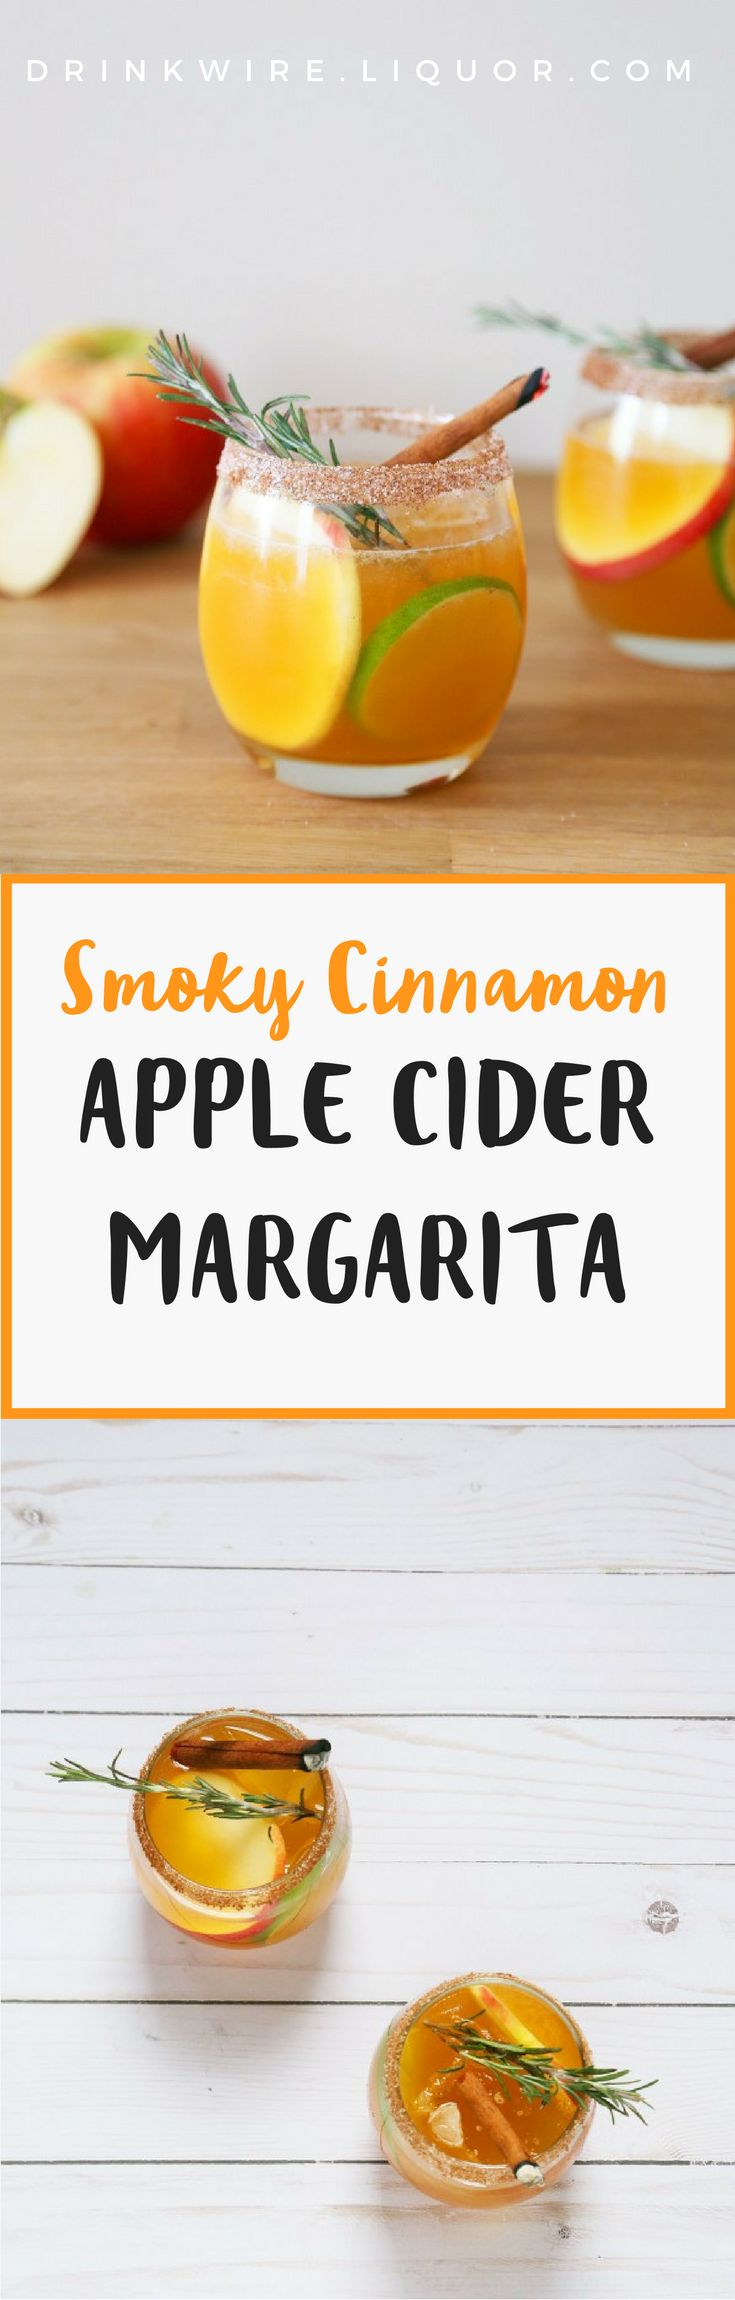 The #margarita #cocktail you need to make. Apple cider, tequila, and a touch of holiday cheer.